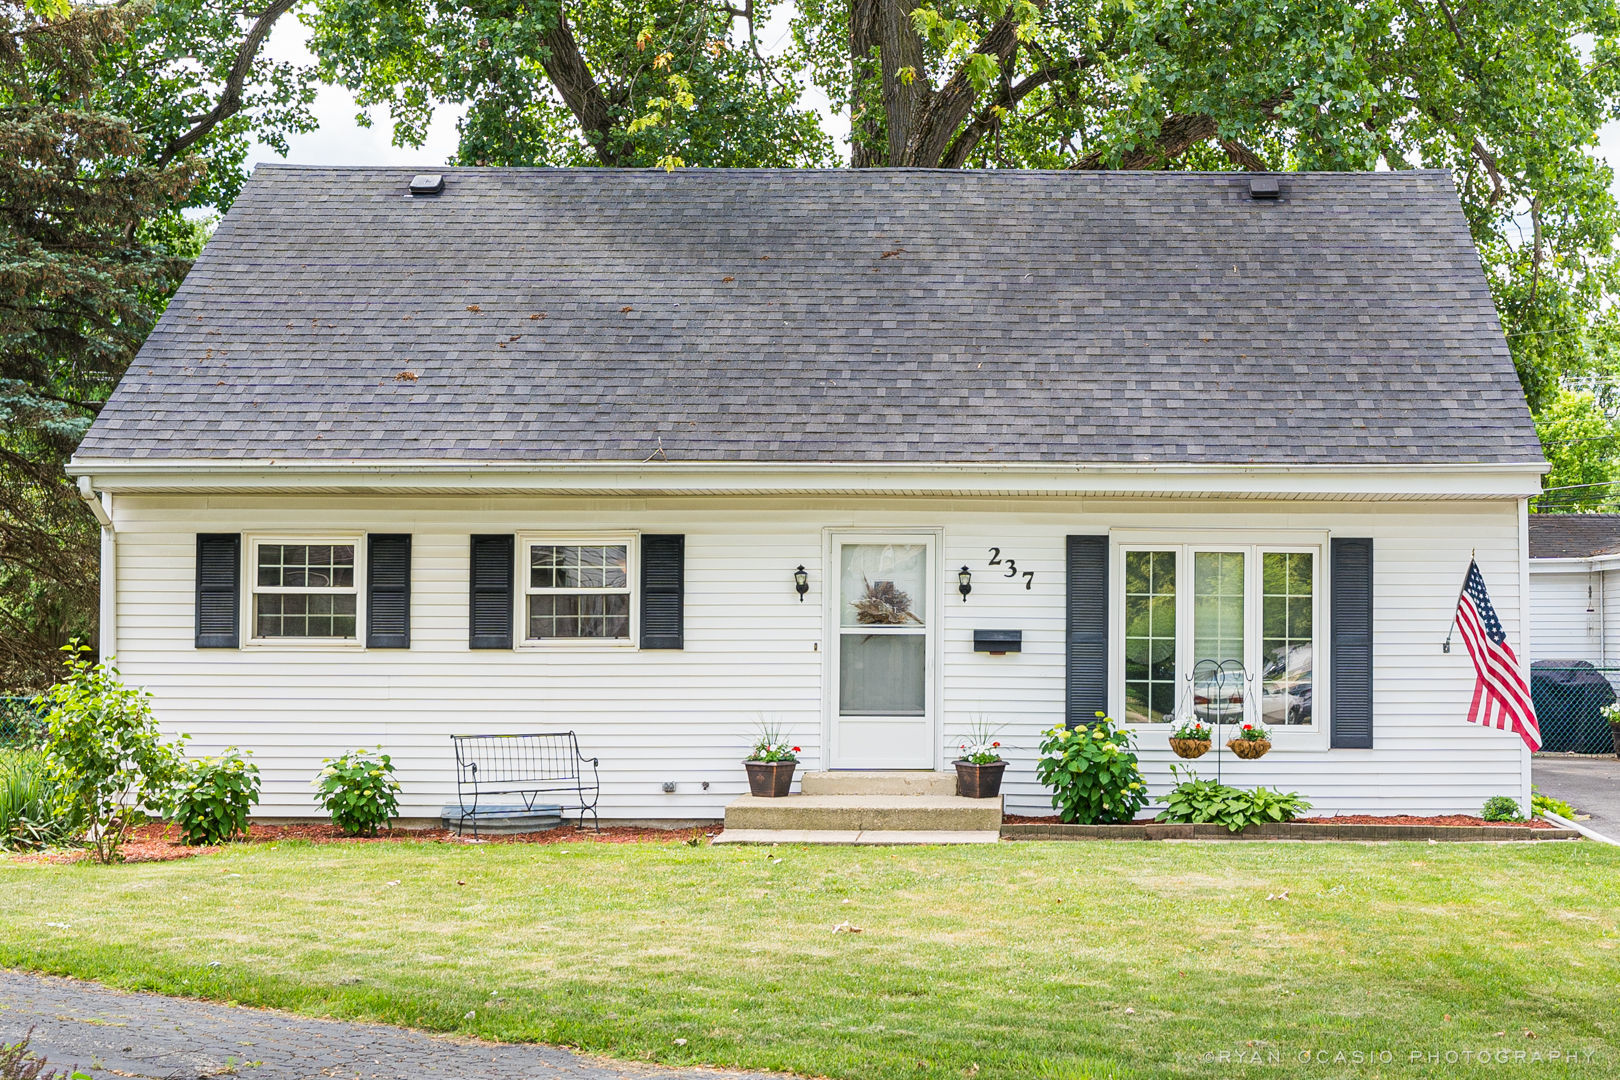 Adorable Cape Cod on a private Cul-de-Sac. Bright, sunny eat-in kitchen. Large living room with built-in book case. Four large bedrooms with hardwood floors (some are carpeted with HW underneath). Two full baths. Two car garage with additional workshop attached. Tons of additional parking. Large, partially finished basement is a great rec room and a cement crawl adds plenty of storage. New HVAC-2014, Roof-2012, Driveway-2019, Front and back doors-2019. Desirable school districts. Walking distance to park and playground. There is so much to love about this charming home.